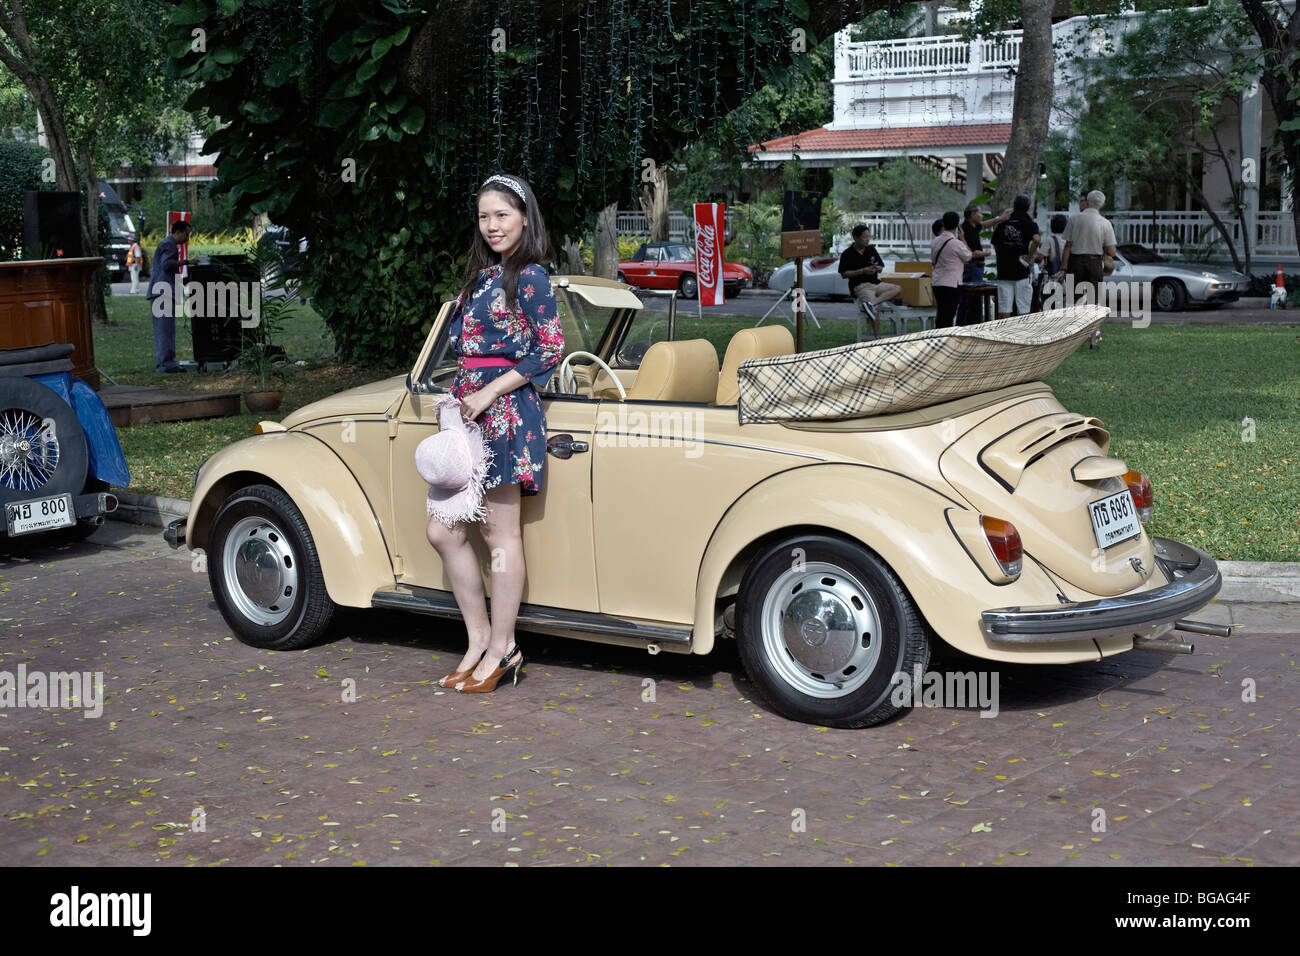 Female model posing with a classic cream Volkswagen Beetle convertible motor car. Thailand S. E. Asia - Stock Image